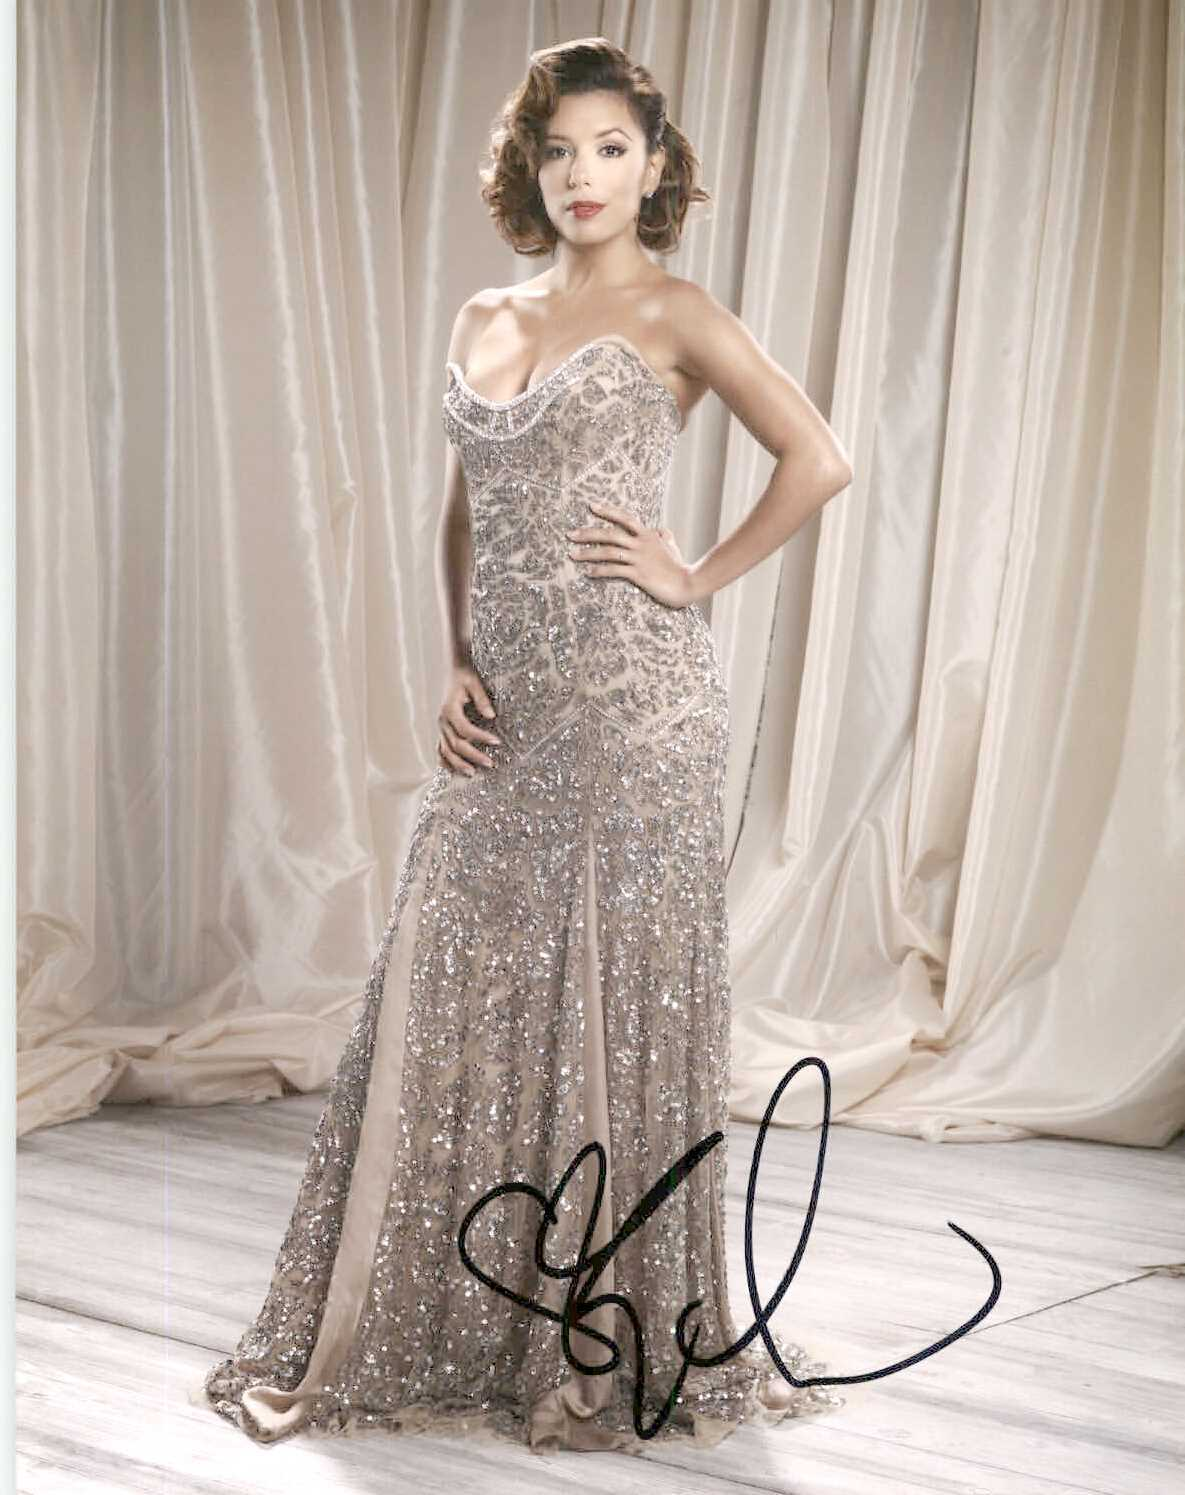 Primary image for Eva Longoria Signed Autographed Glossy 8x10 Photo #10